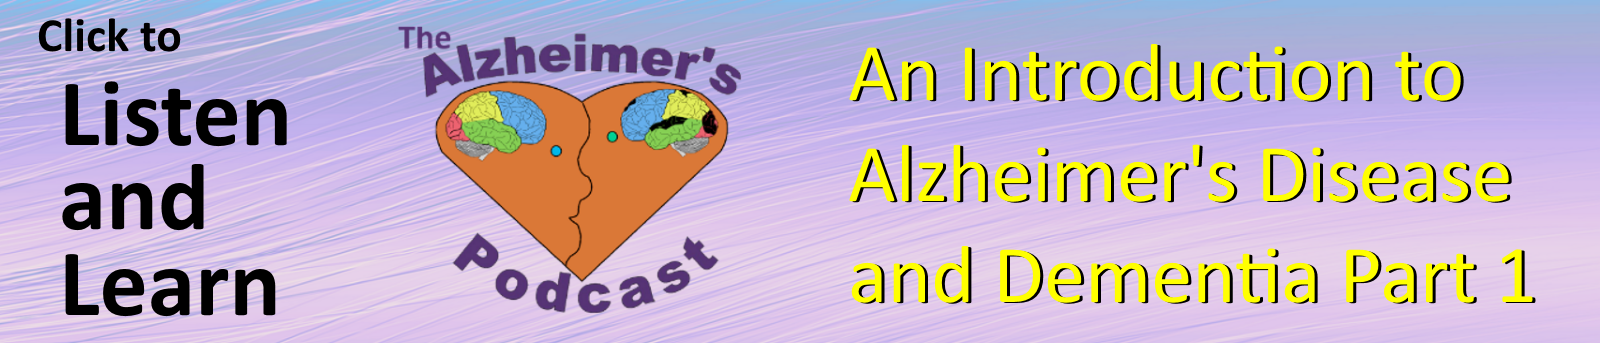 Episode 7 of The Alzheimer's Podcast